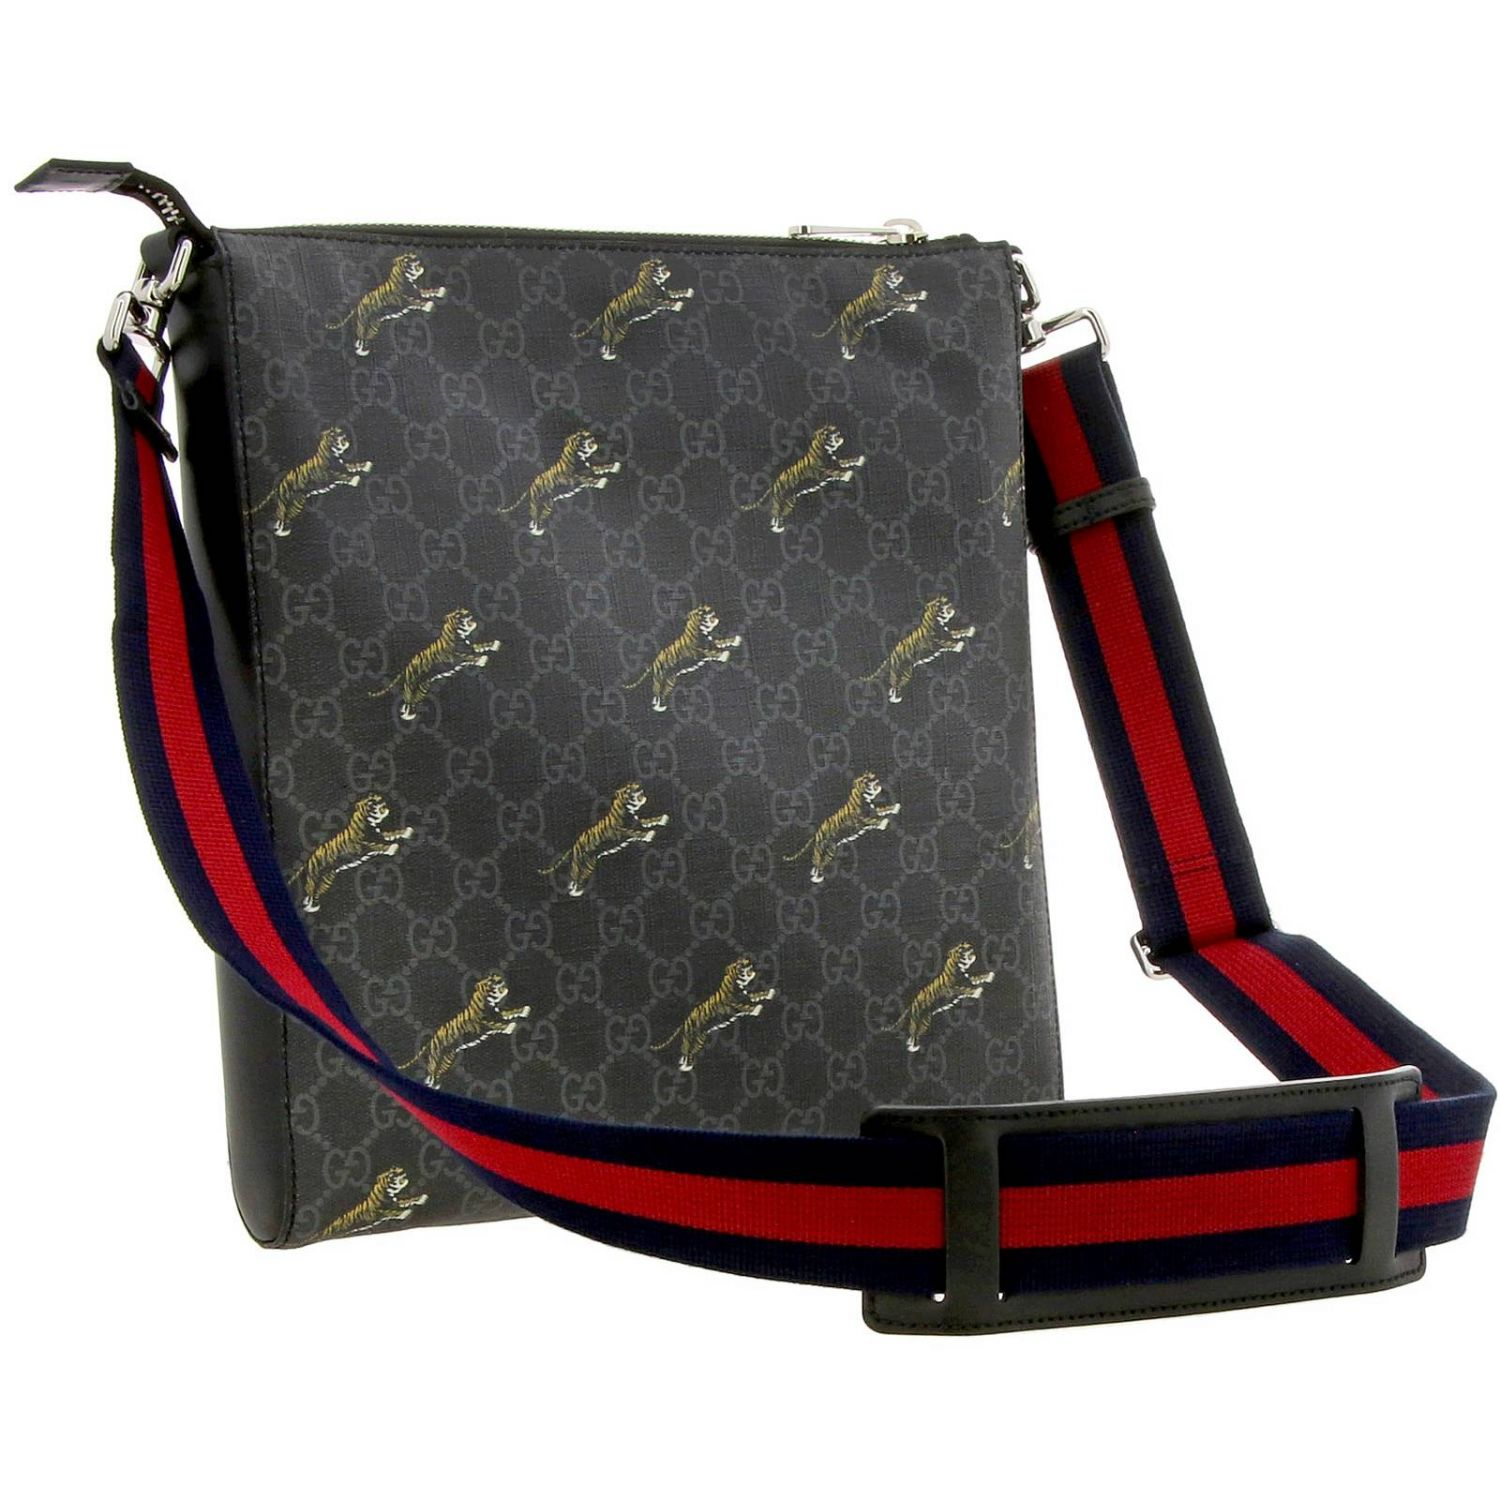 Borsello in pelle con stampa tigre all over e monogramma GG Gucci nero 3